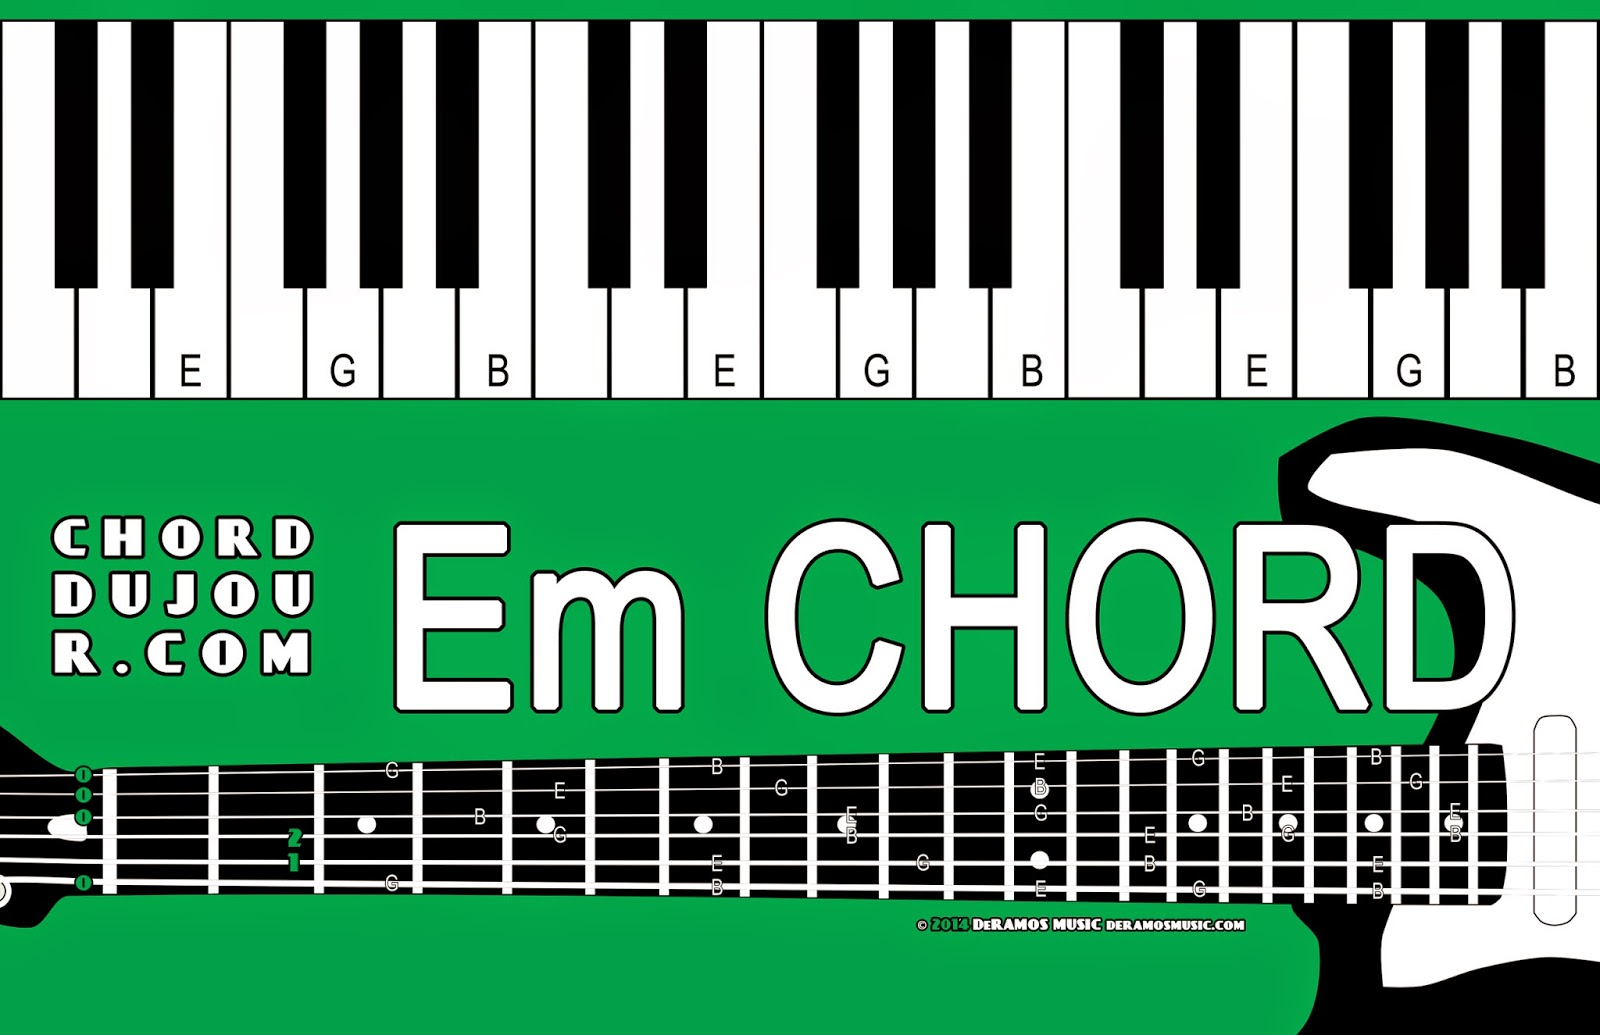 Chord du jour chord deux jour challenge em and g on the guitar leave the low e string open with your index finger fret the a string behind the 2nd fret 1 with your middle finger fret the d string hexwebz Image collections